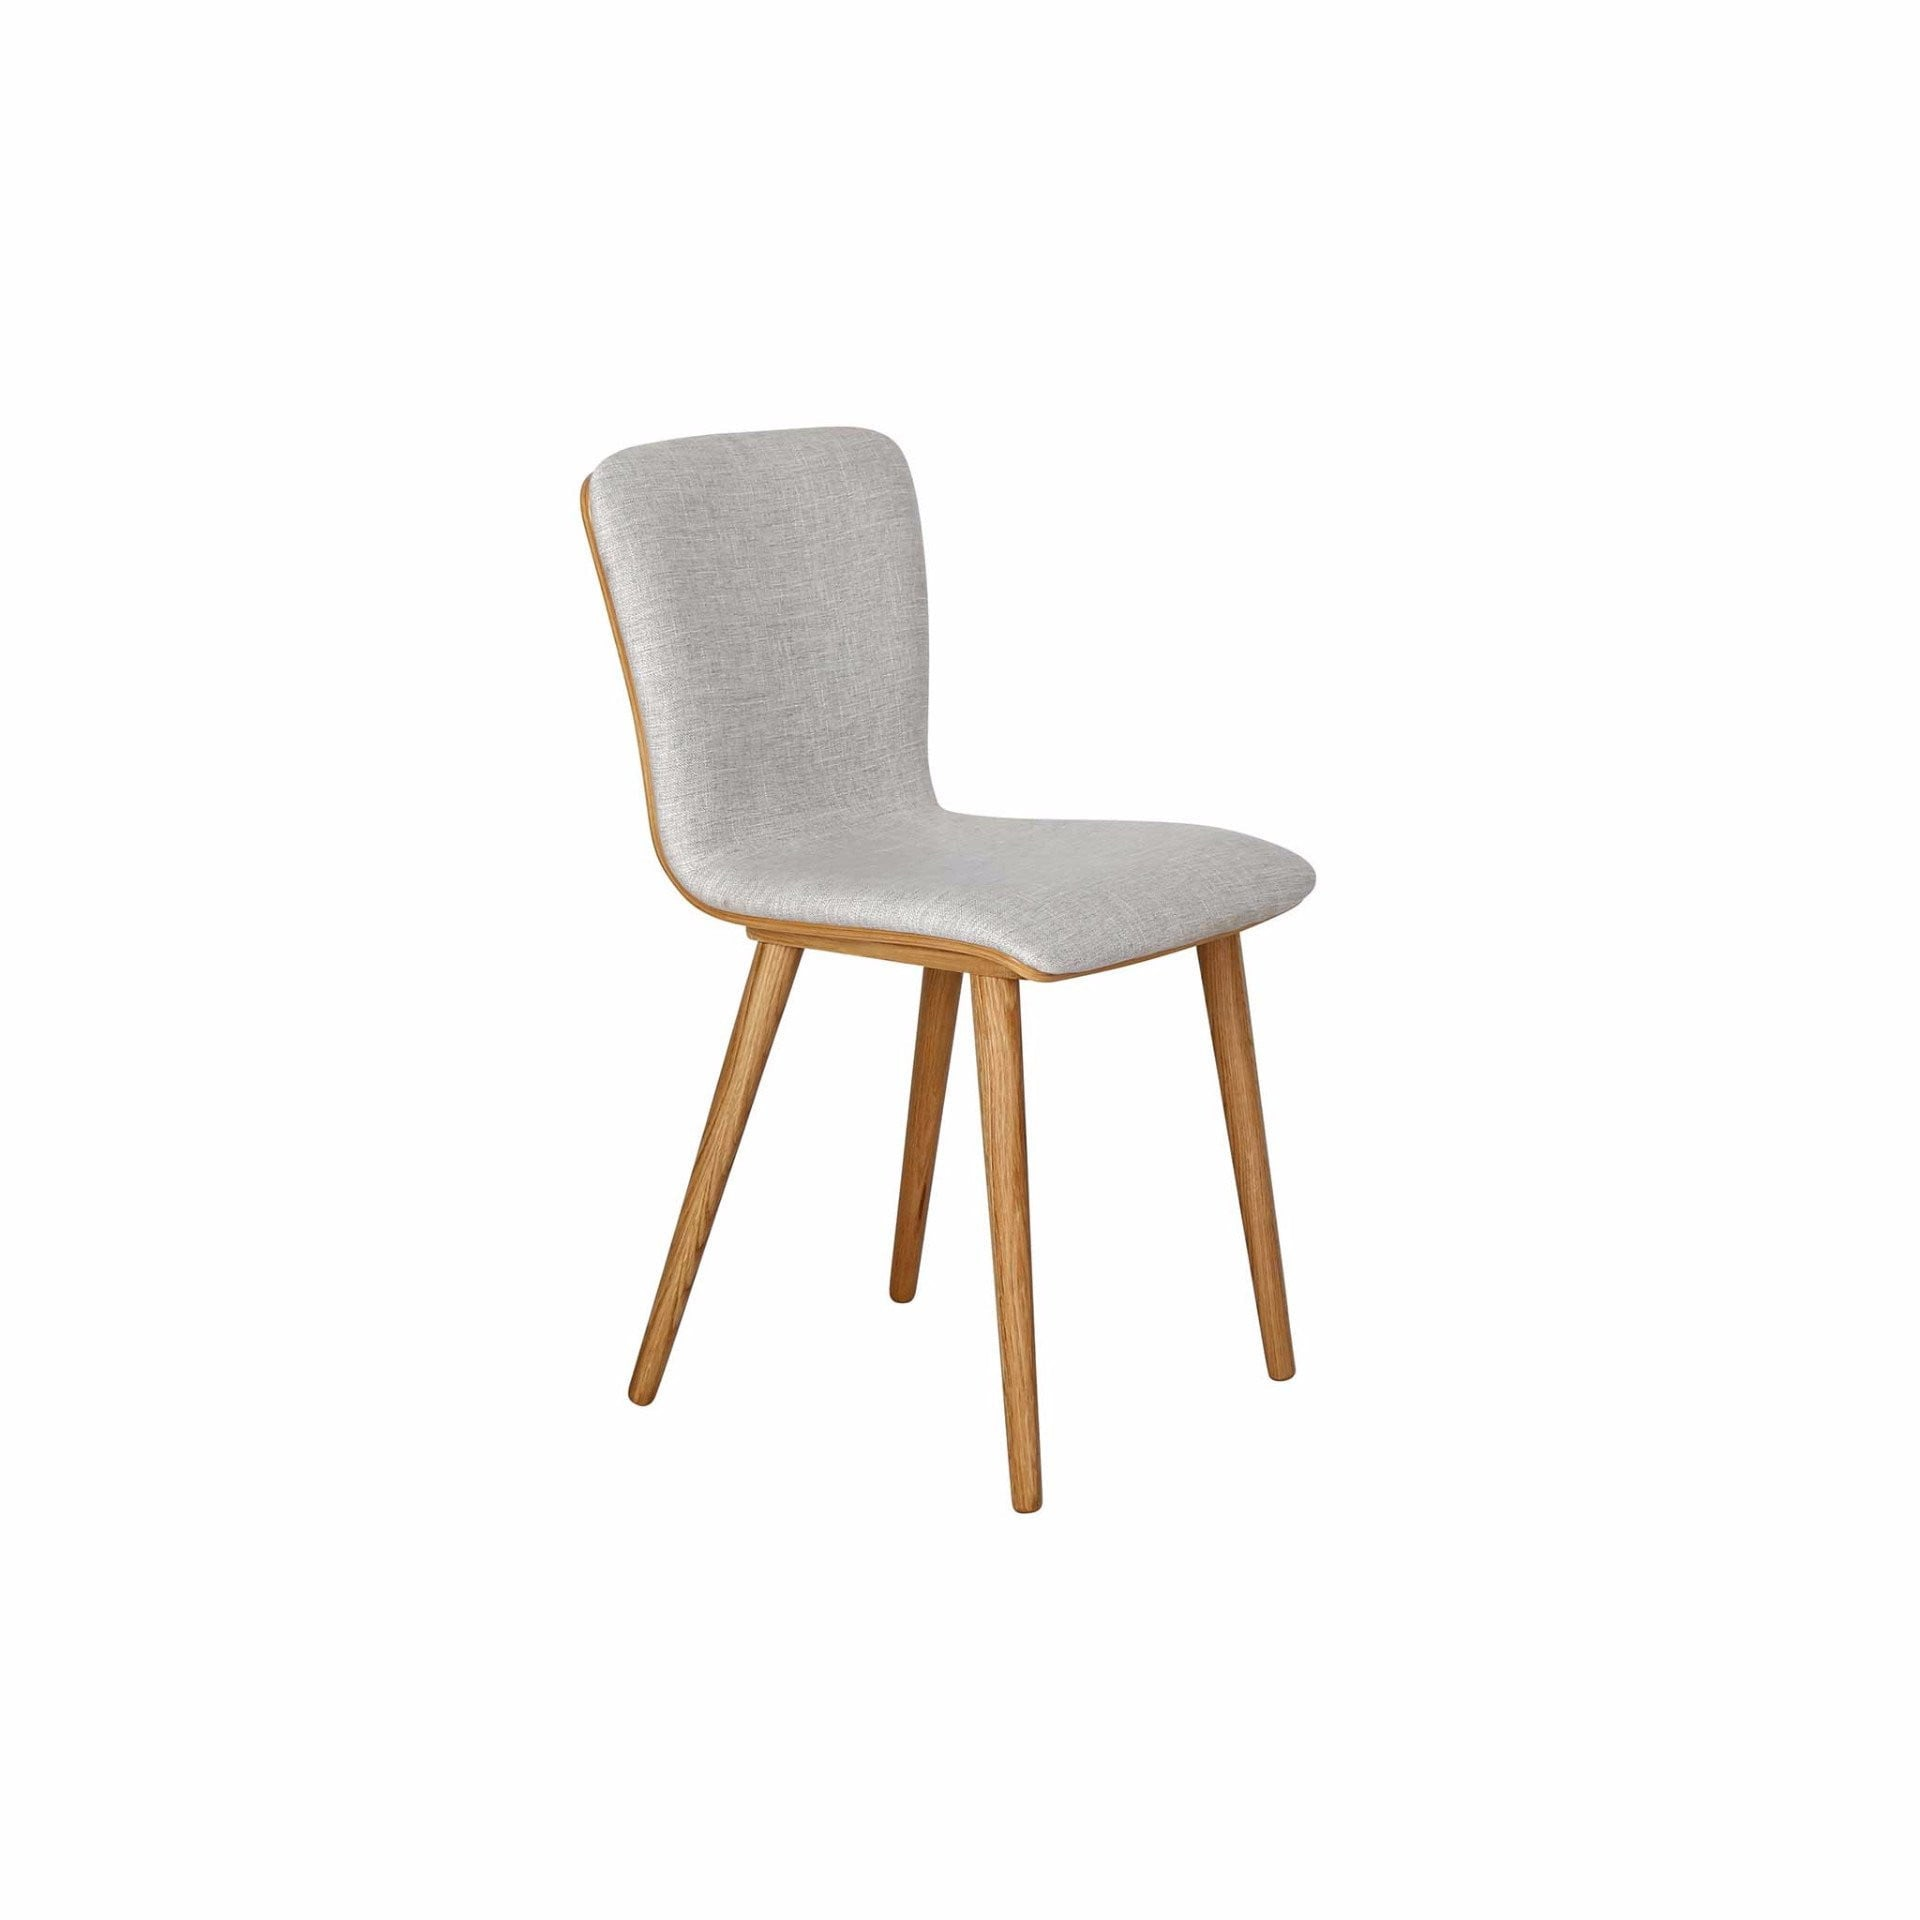 Dining Chairs Melbourne New Scandinavian Dining Chairs For Sale